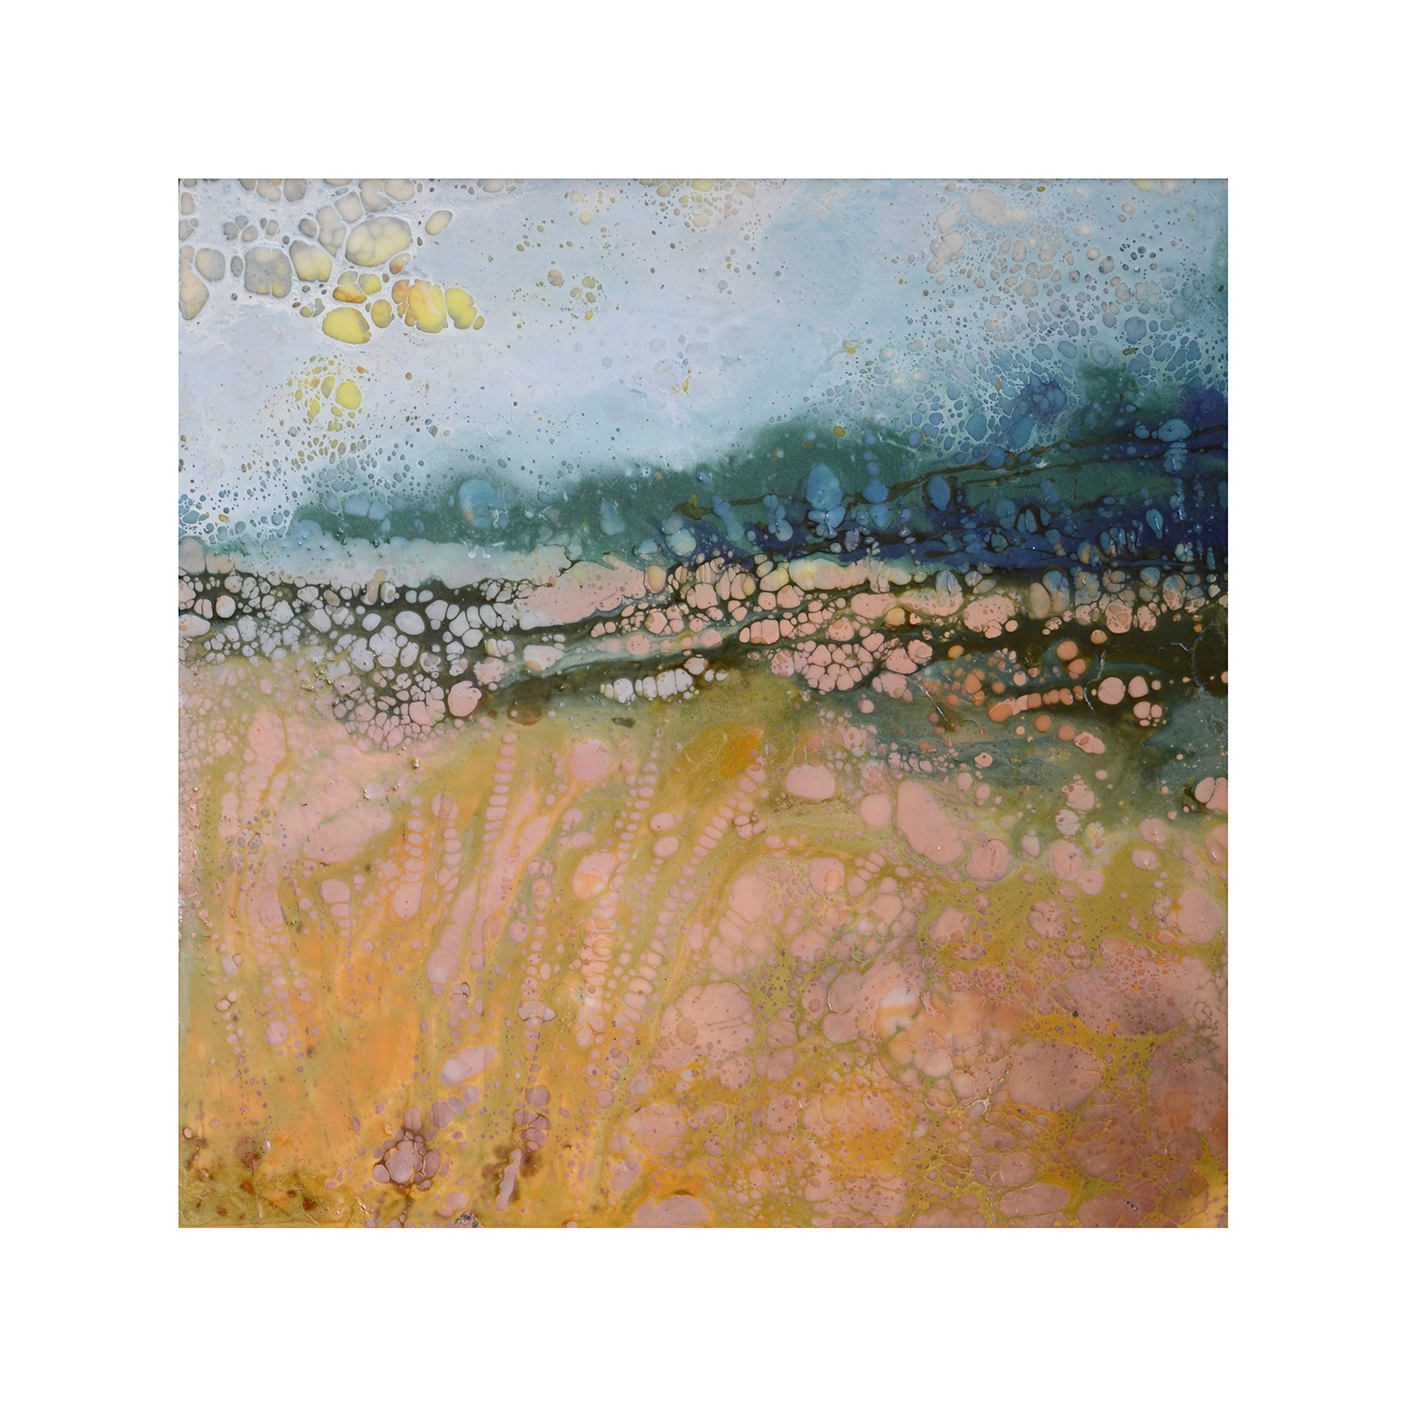 Pausing to Absorb it All   12 x 12  Encaustic on Panel  $300